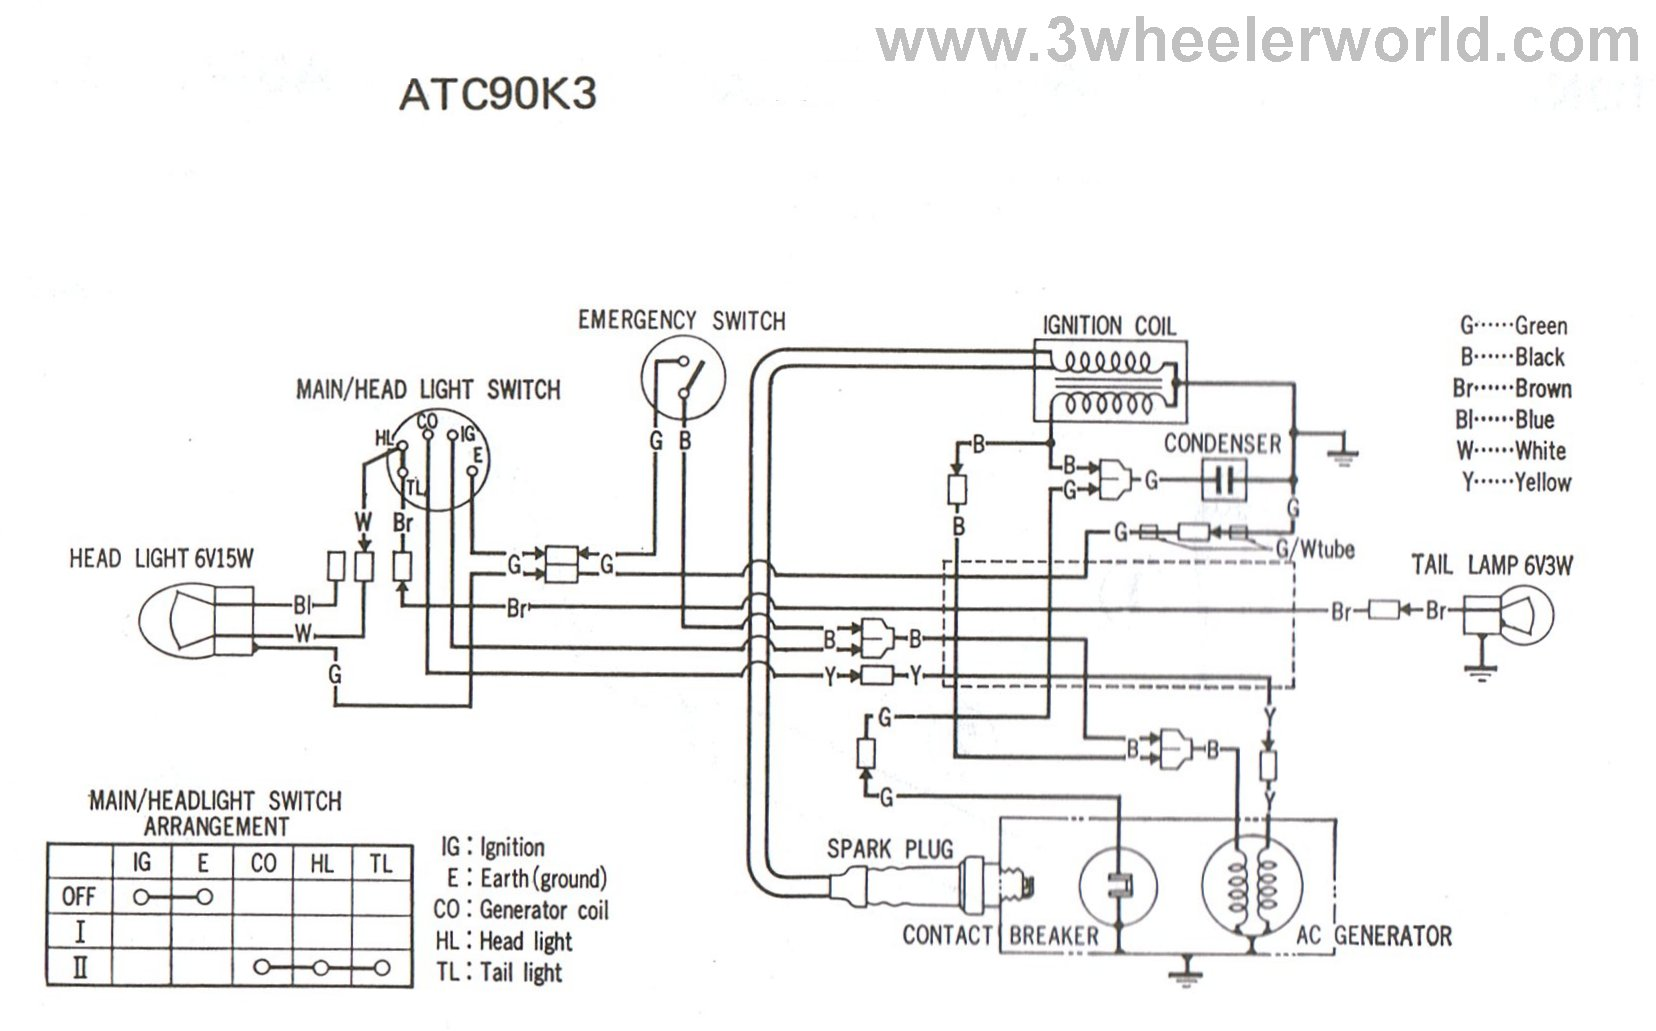 hight resolution of honda atc 90 wiring diagram wiring diagram mega 3 wheeler world tech help honda wiring diagrams